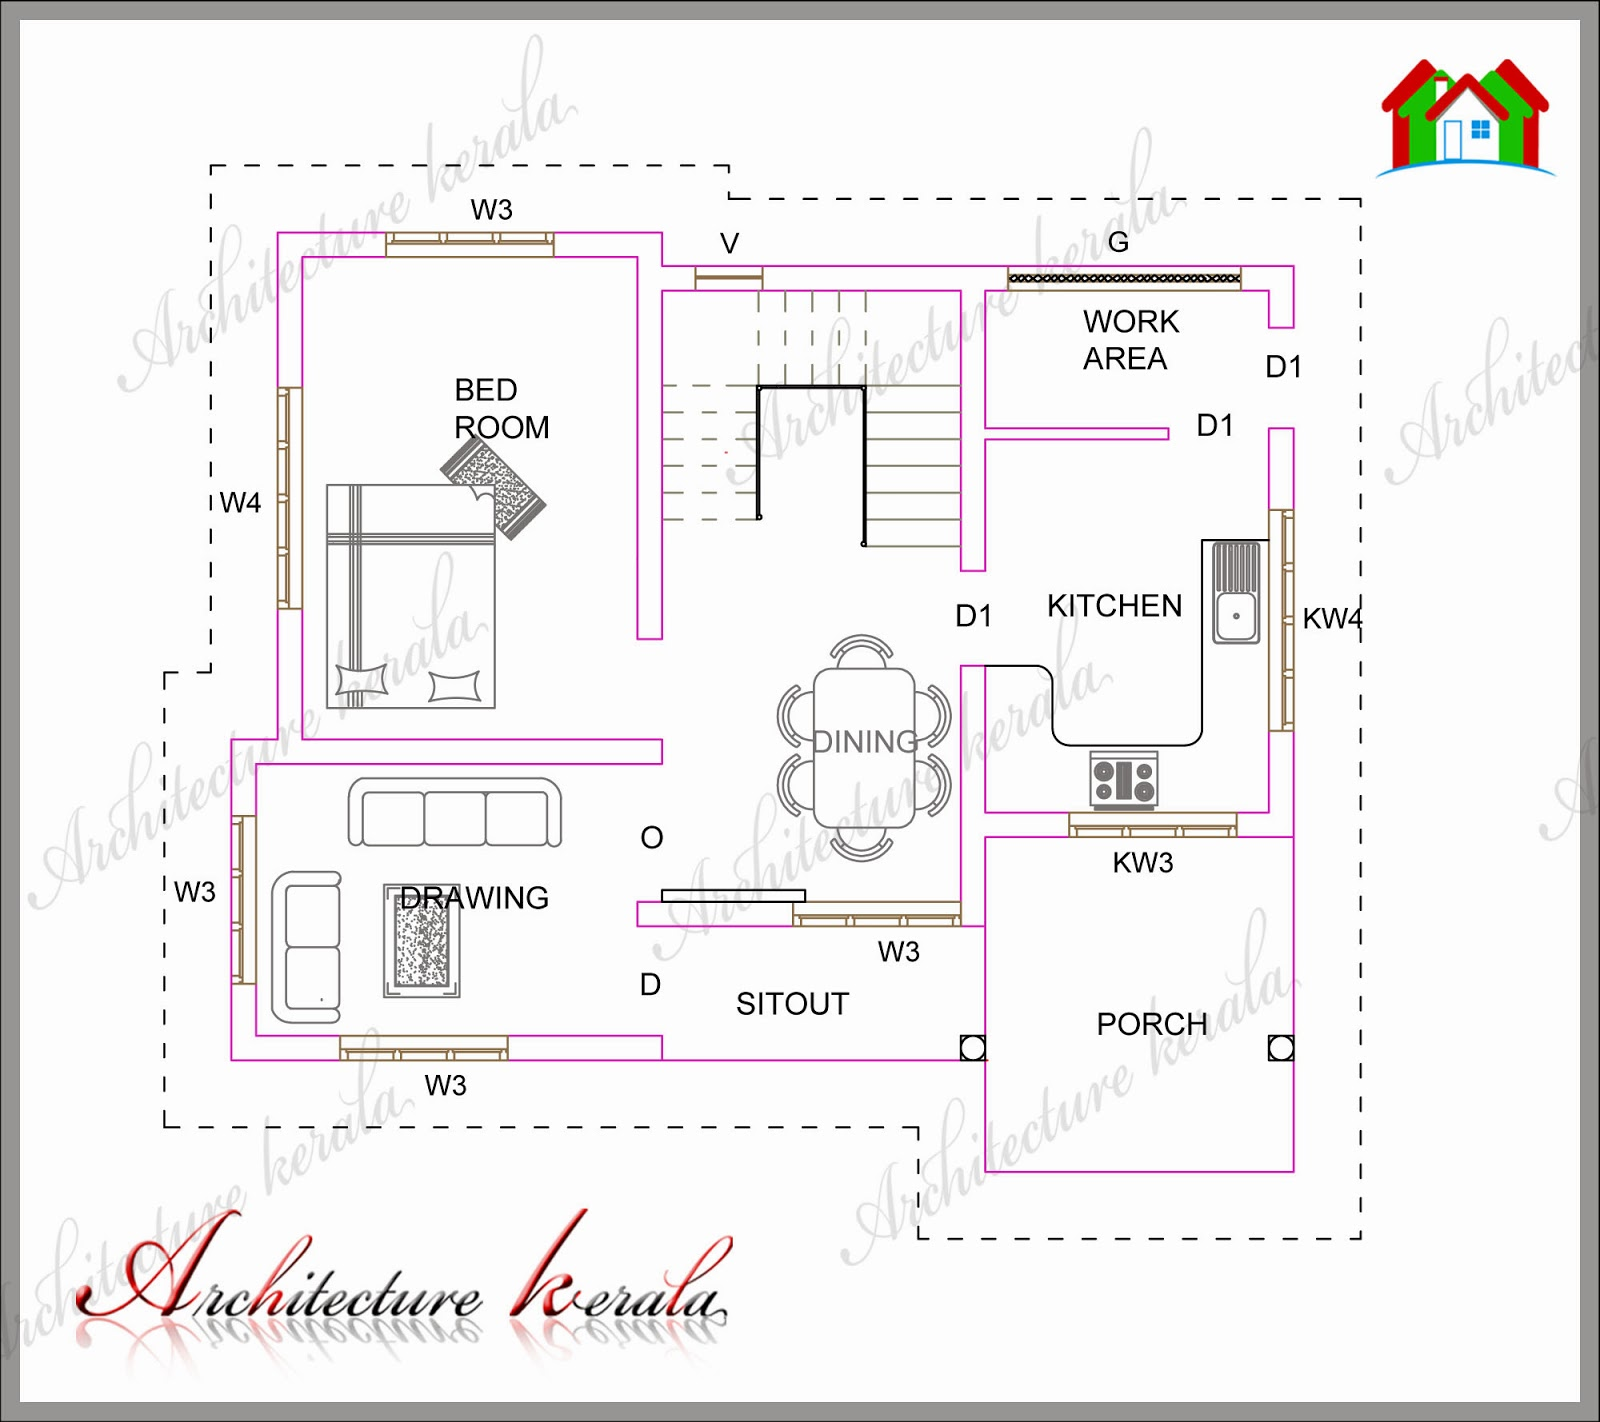 A Small Kerala House Plan Architecture Kerala: 3 bedroom kerala house plans